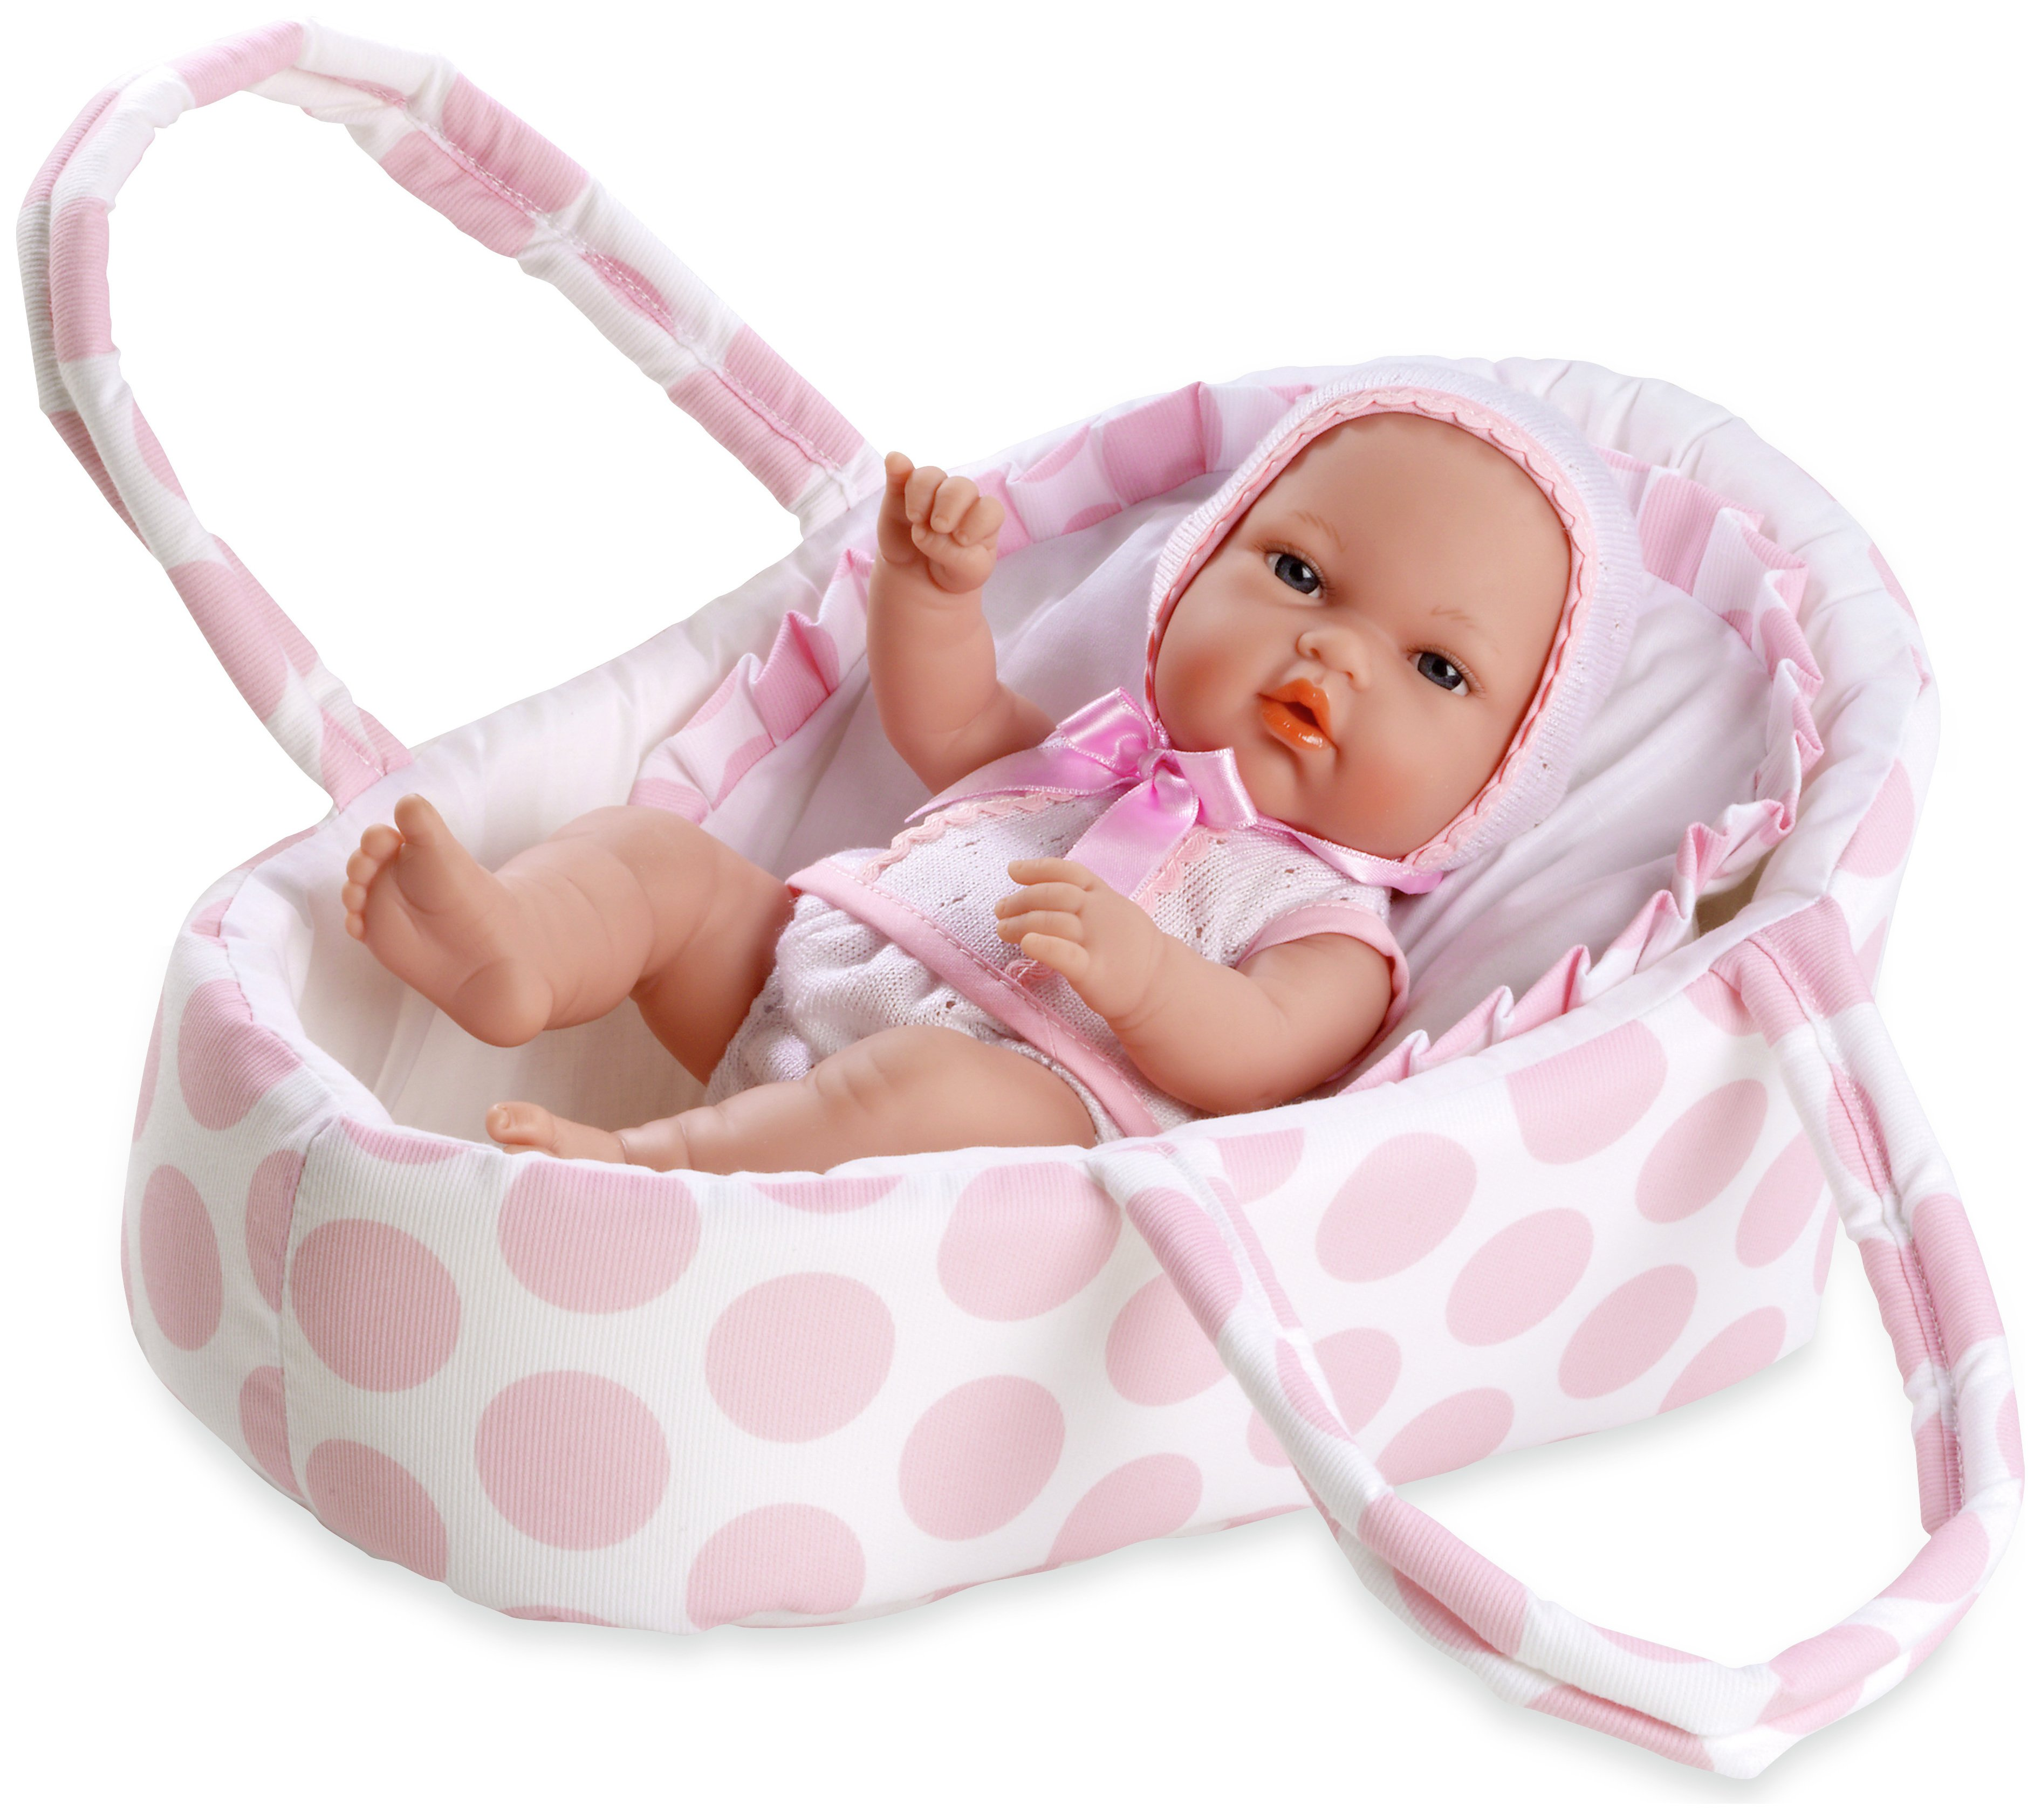 Image of Arias Elegance Baby Doll with Baby Carrier.